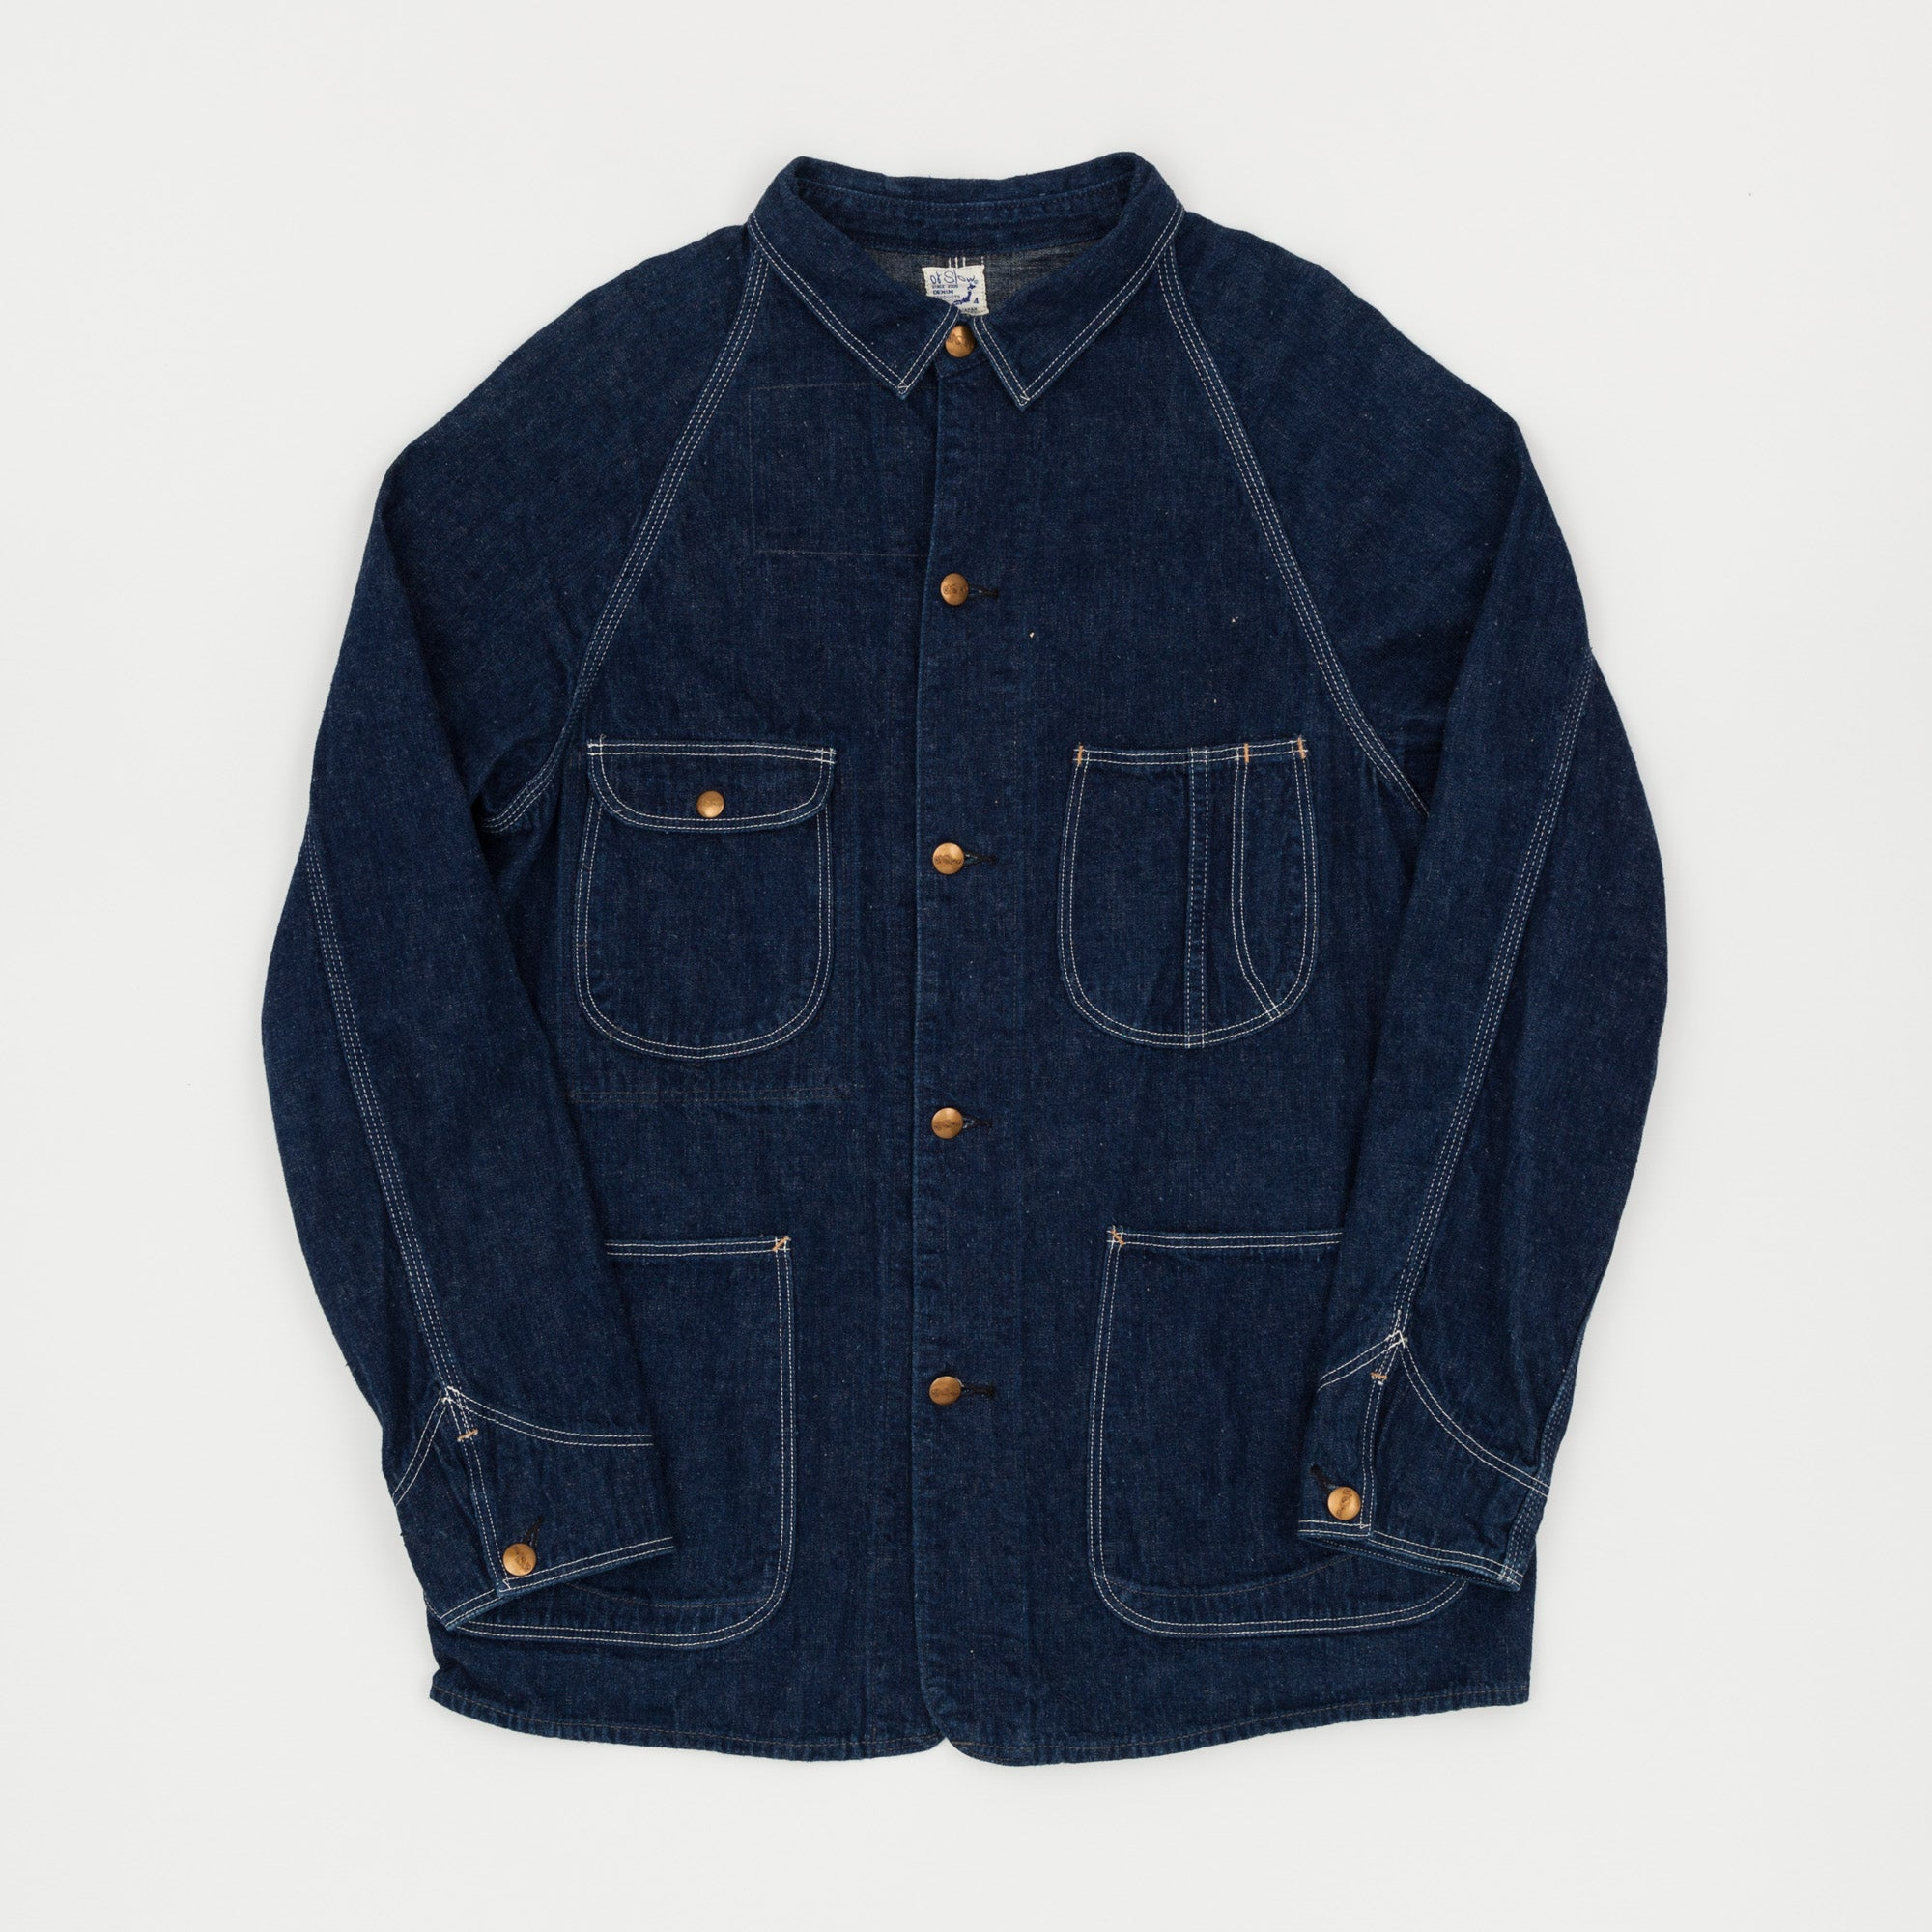 Orslow Denim Coverall Jacket